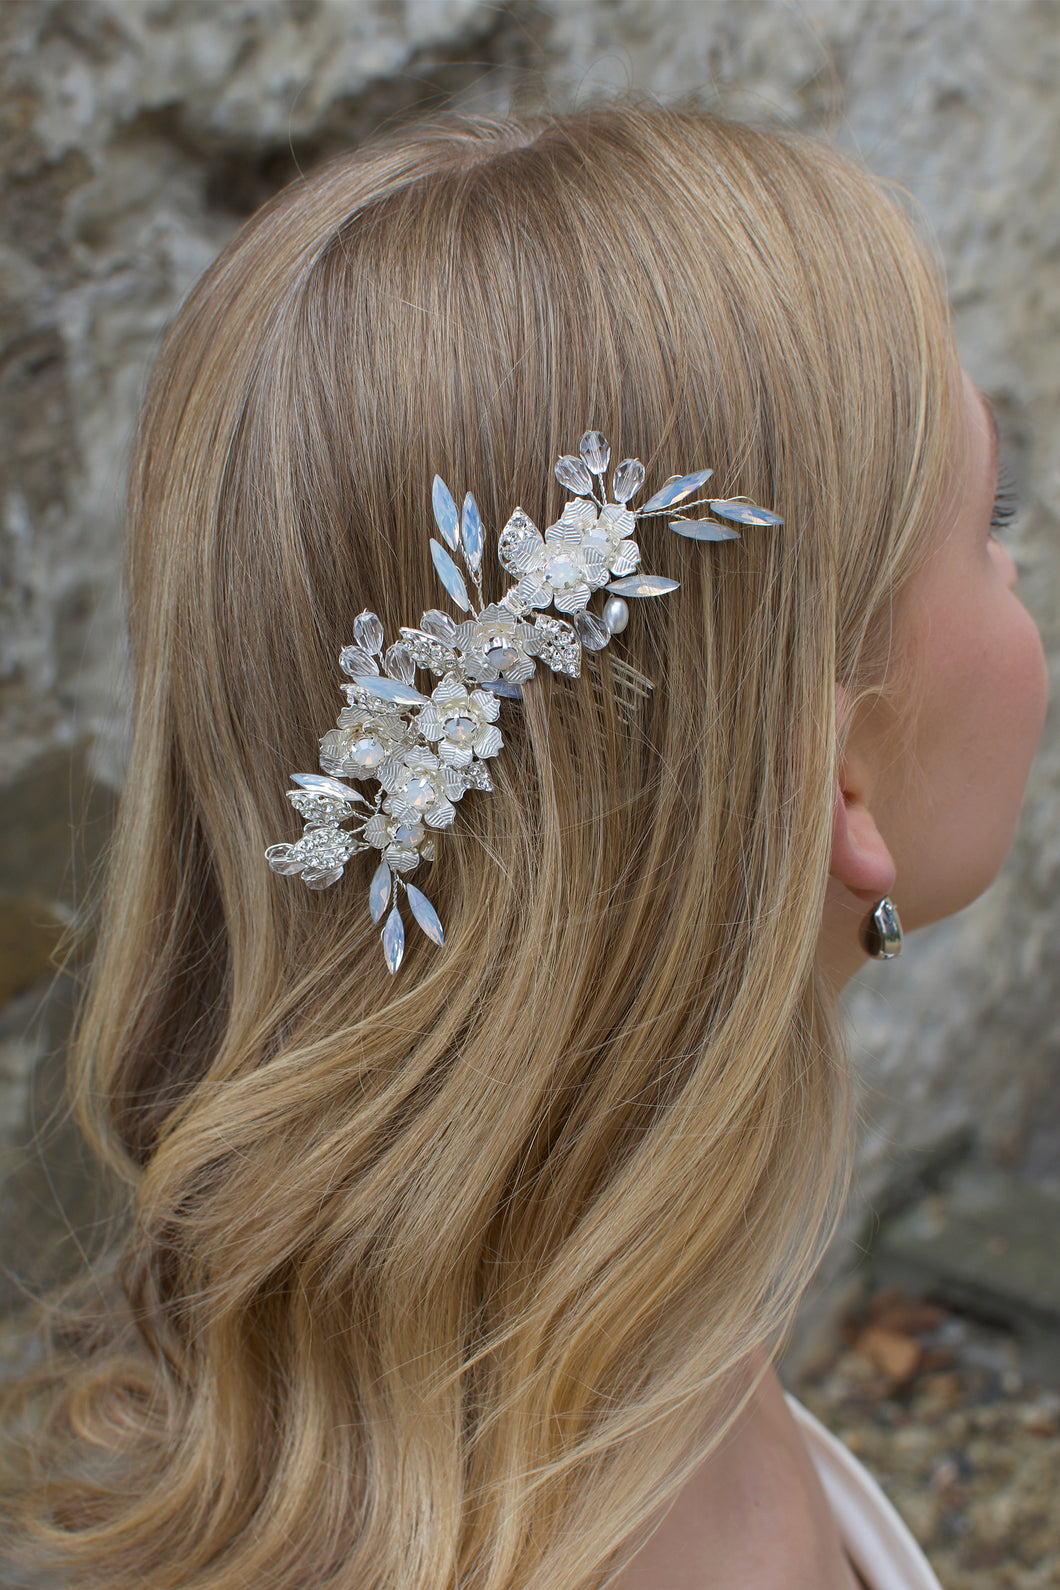 Long Blonde hair Model Bride wears a small white opal comb on the side of her head. There is a stone wall background